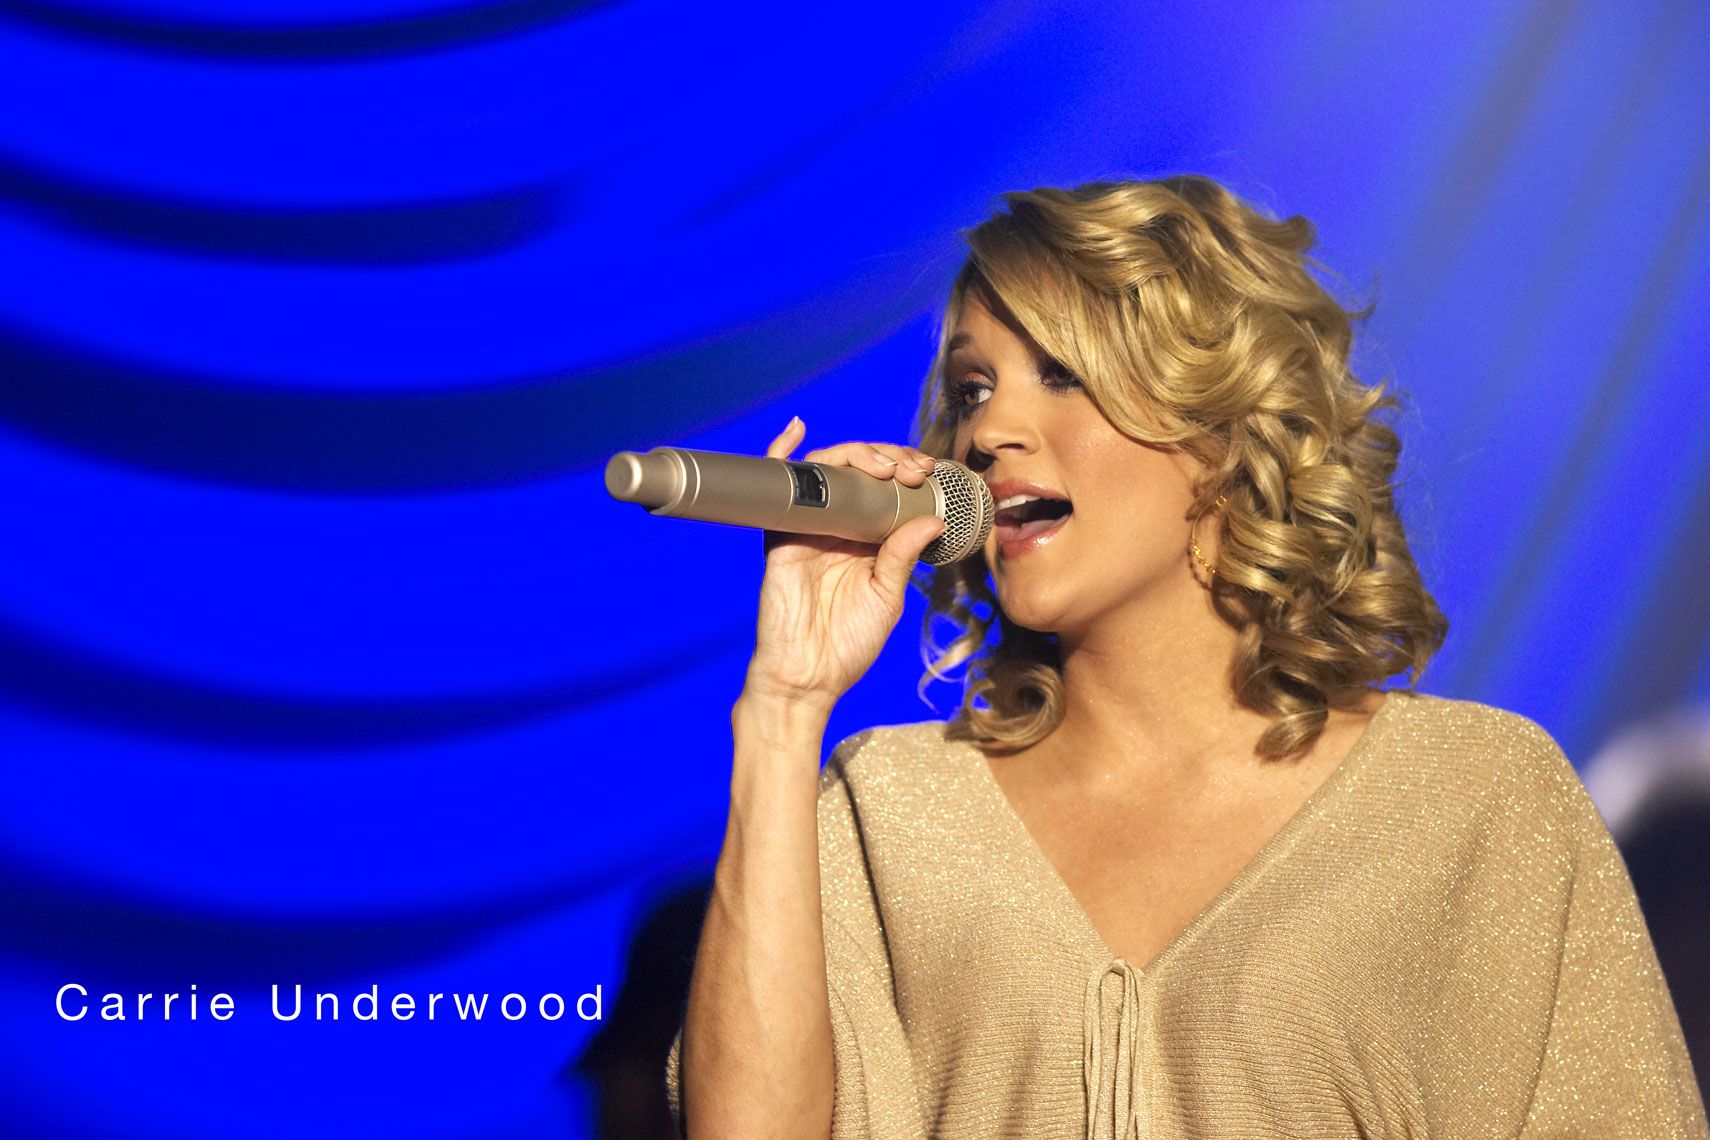 Carrie-Underwood-009242